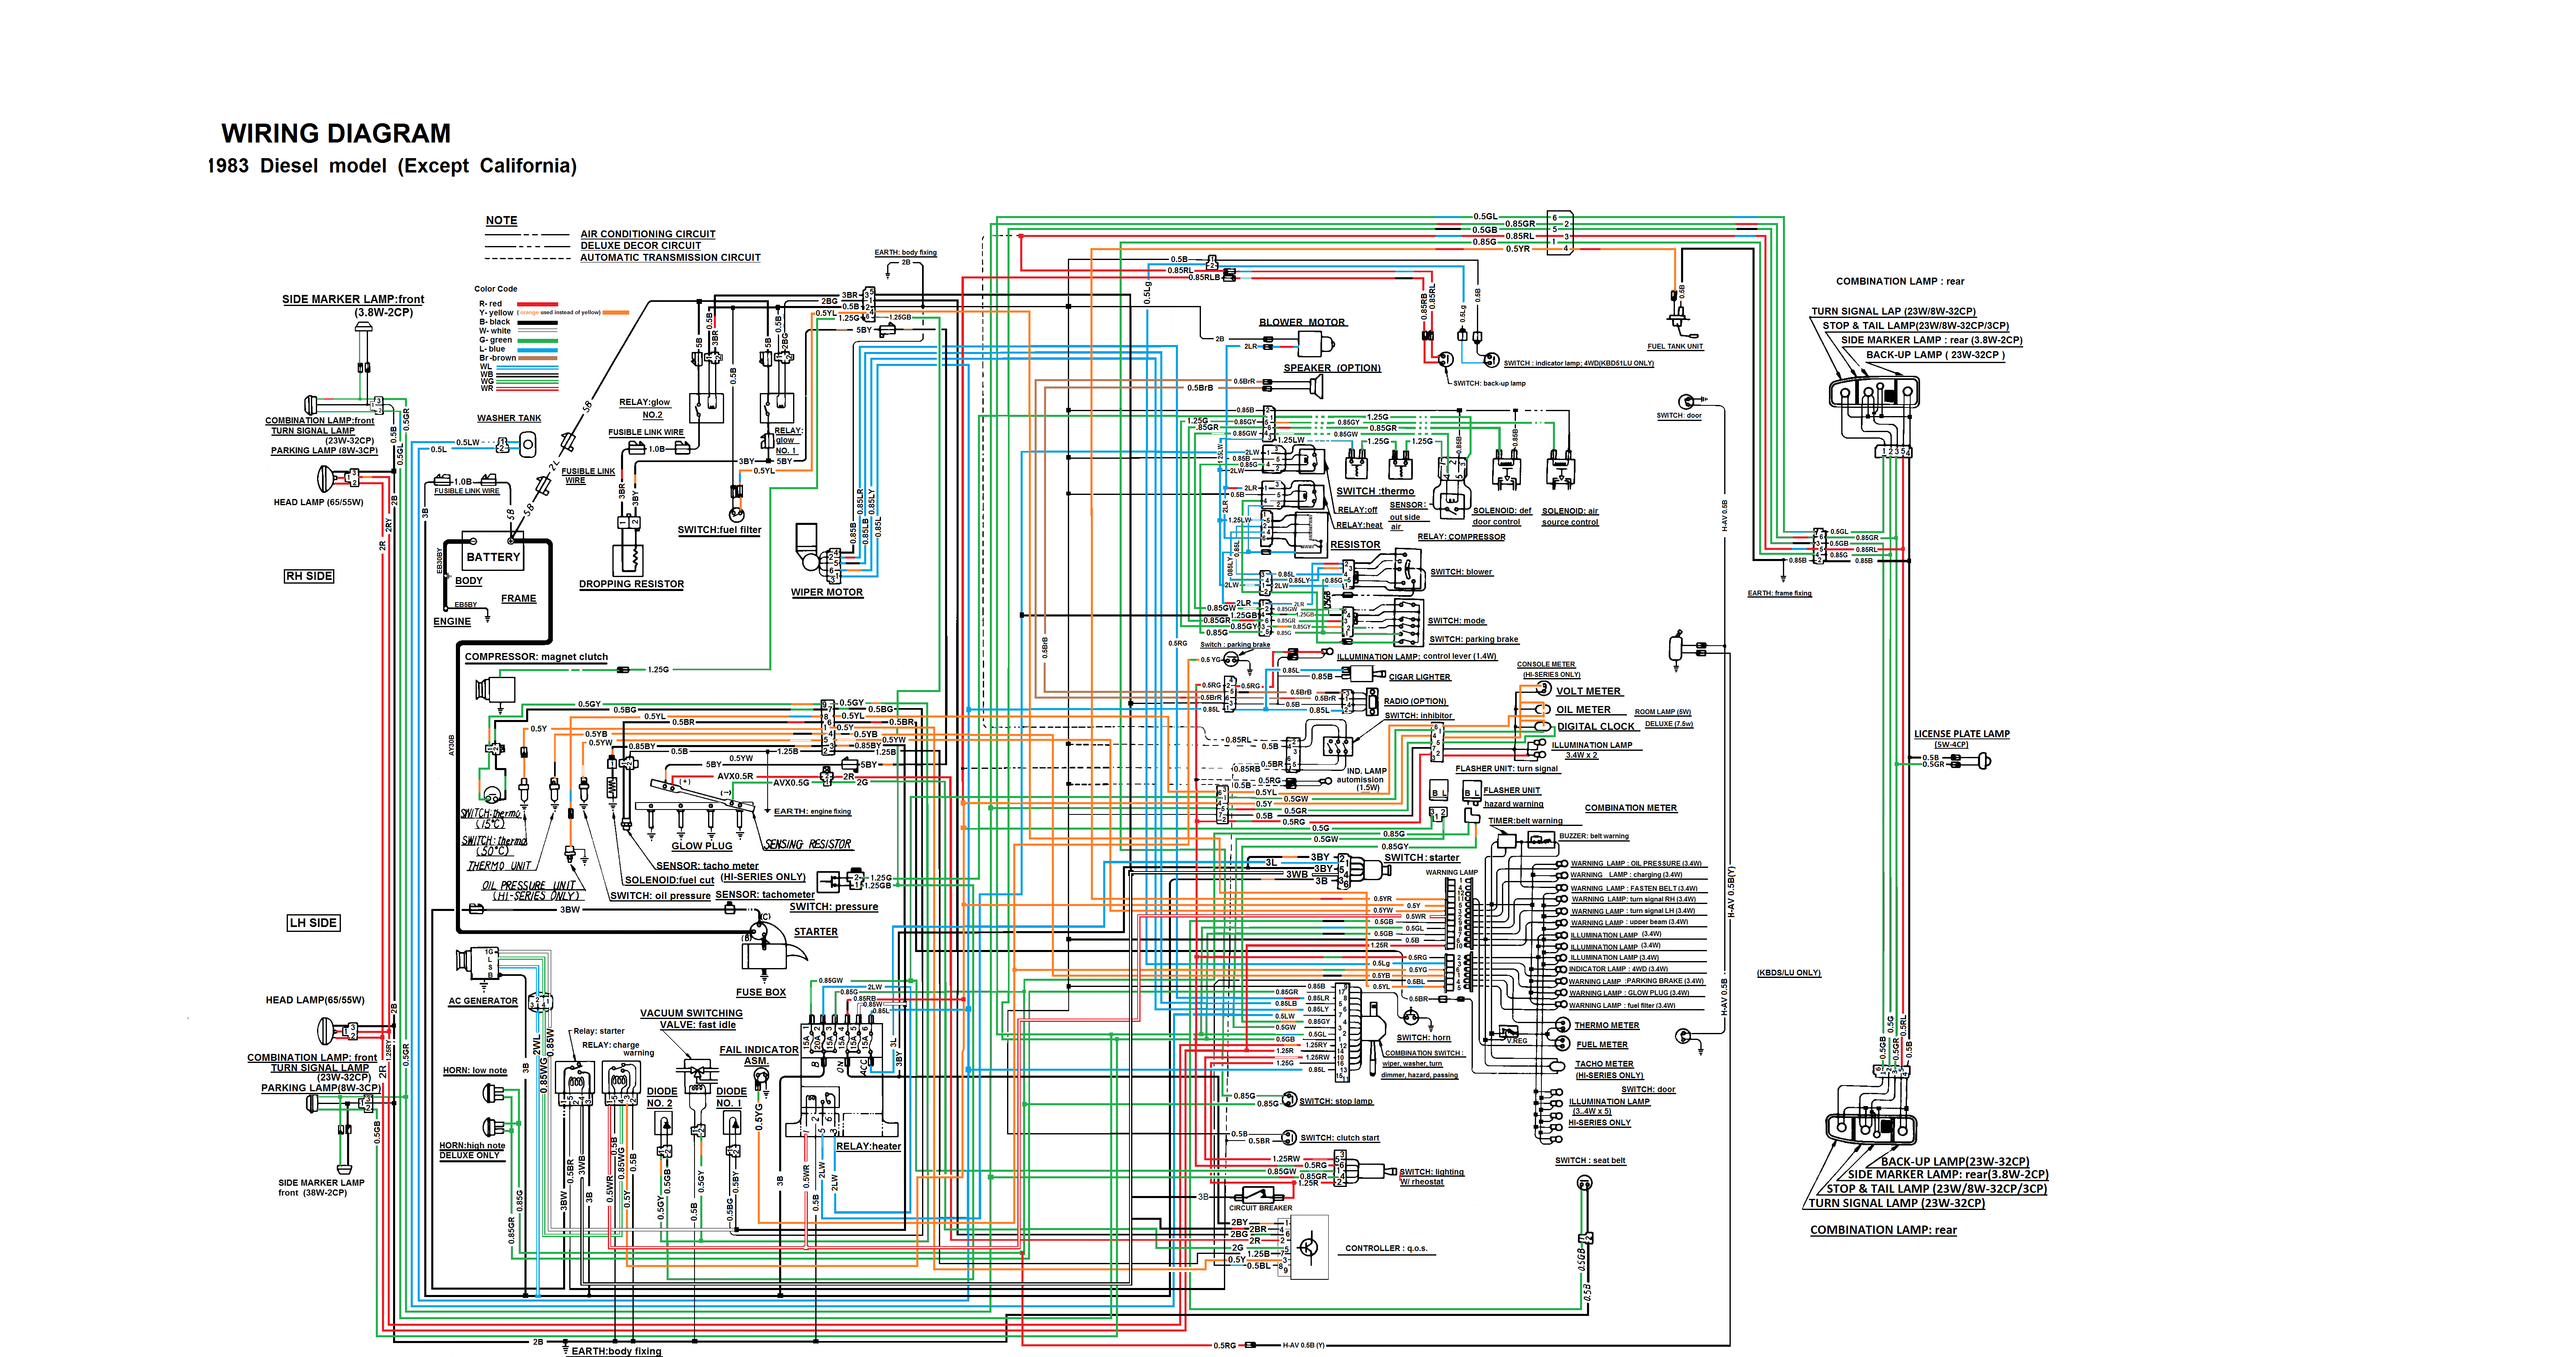 Schematic_from_DieselDawg_10-25-2013.png